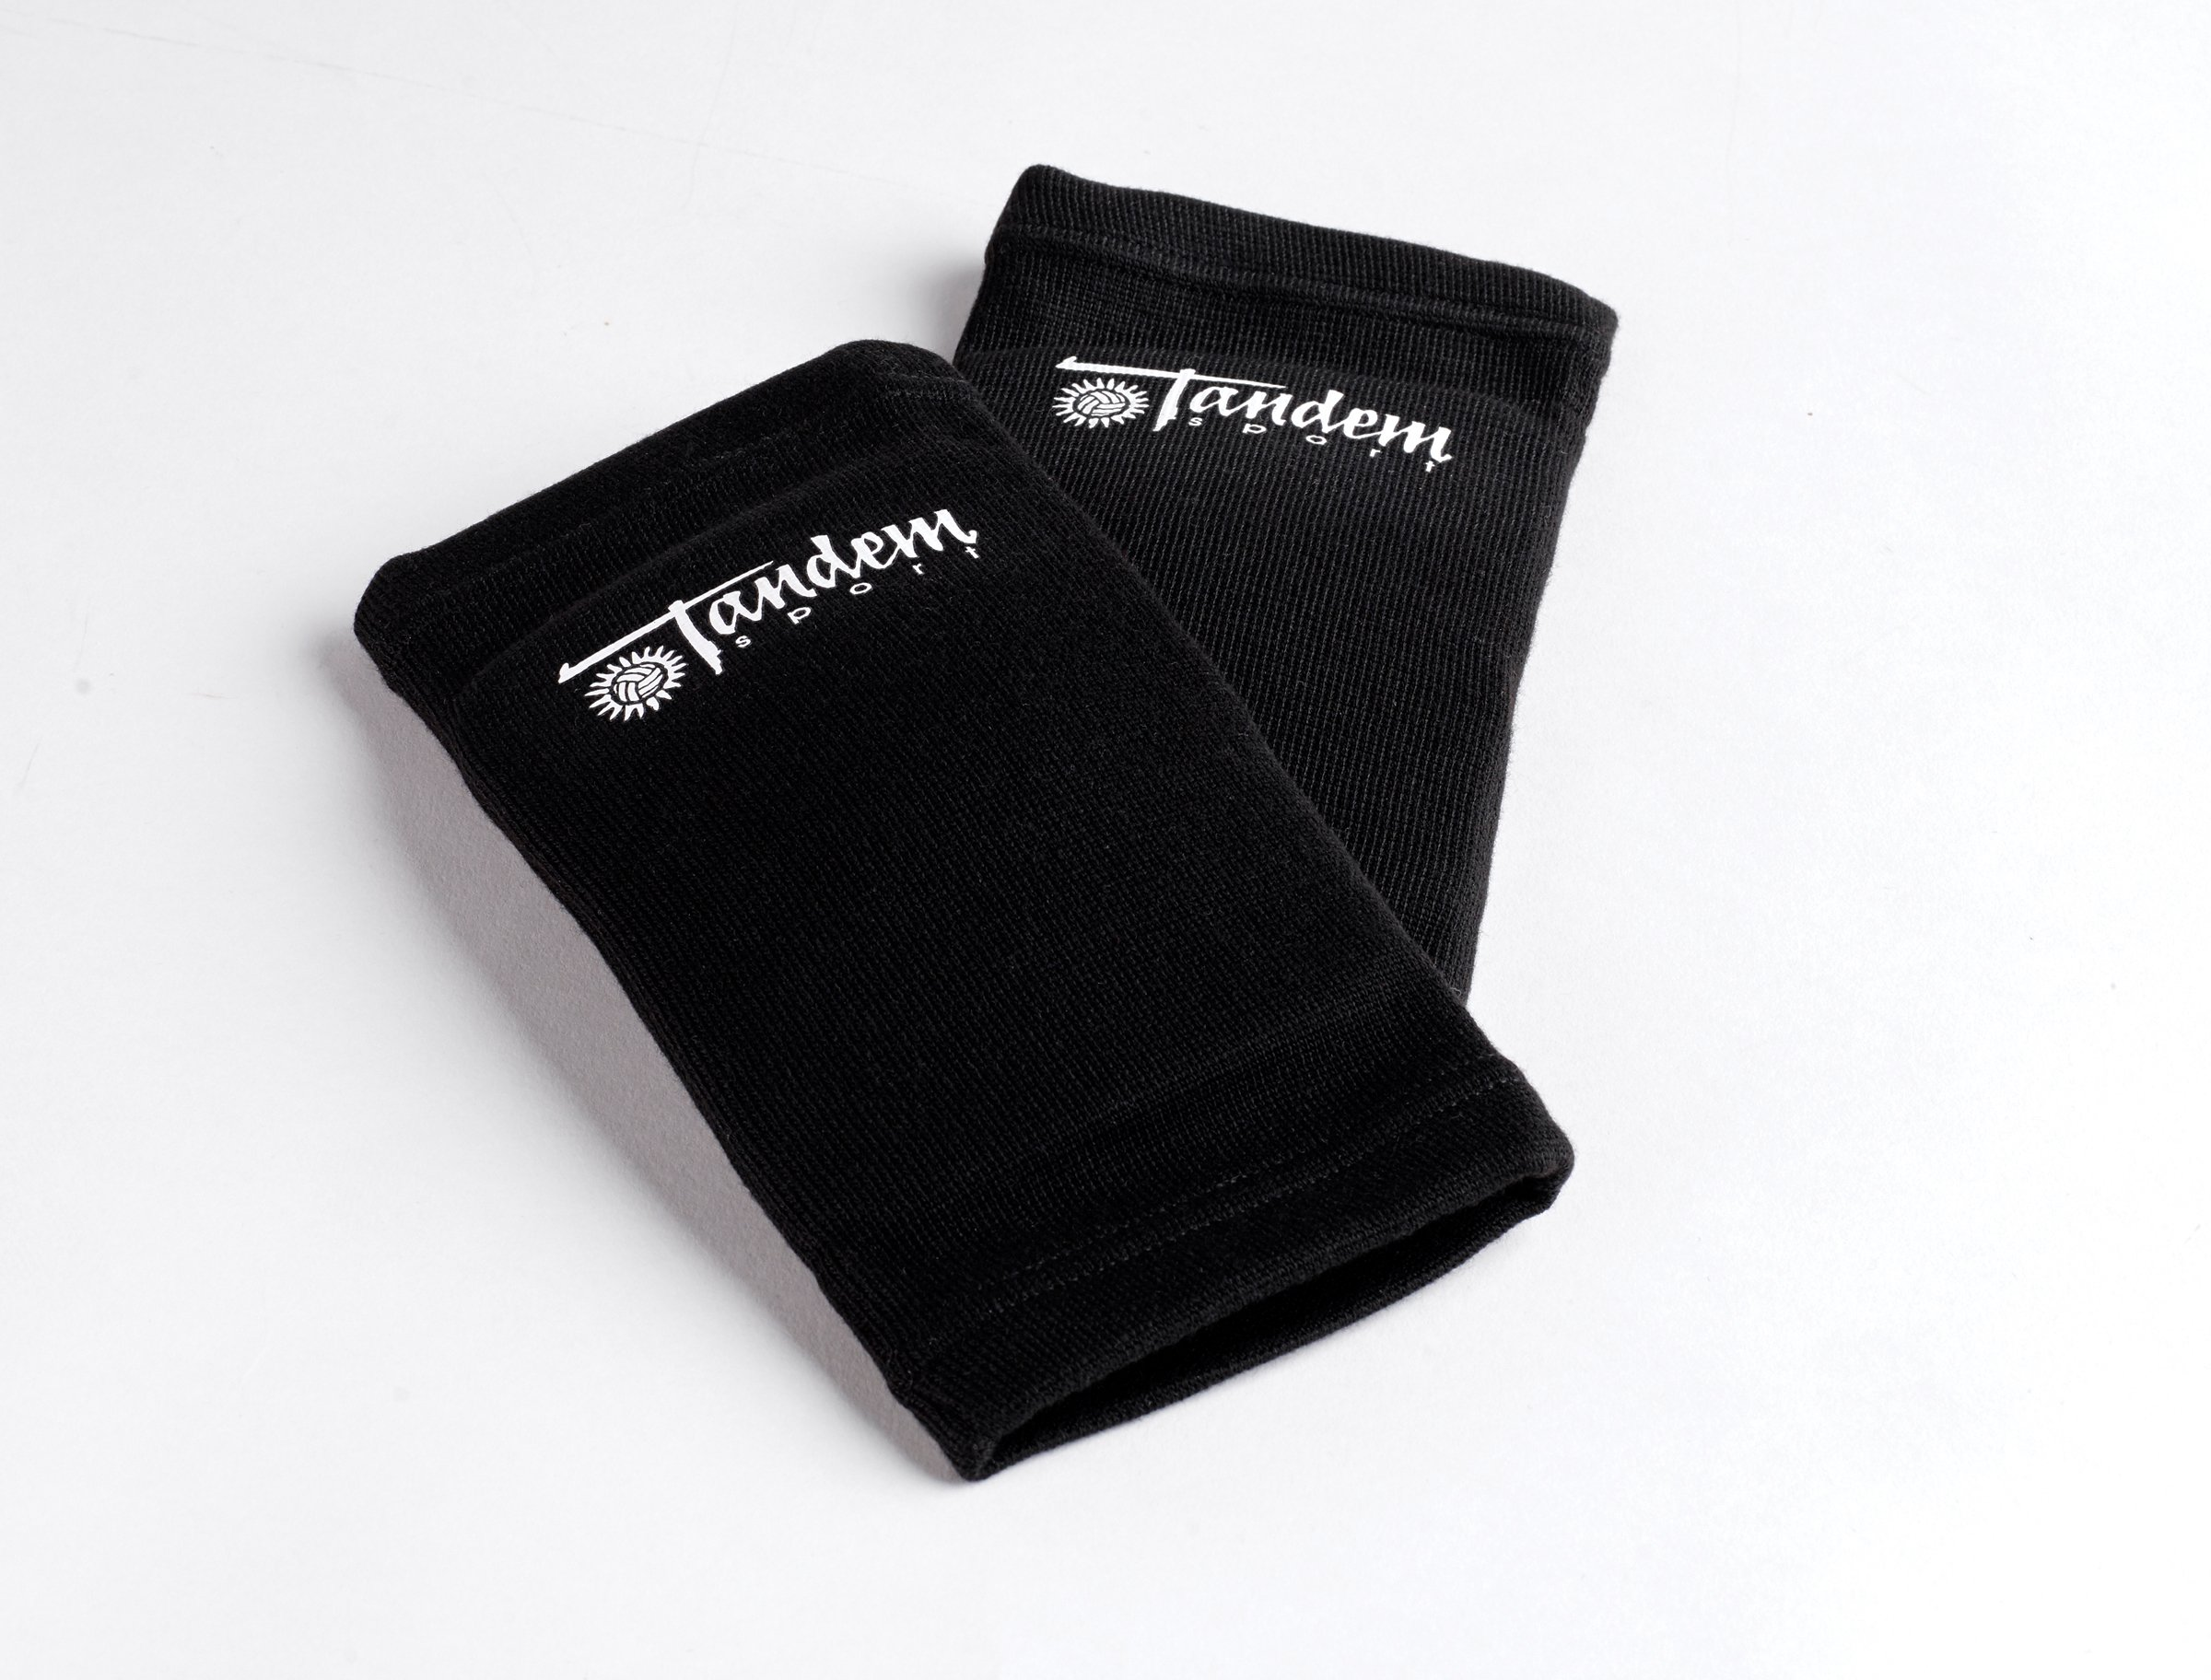 Tandem Sport Volleyball Elbow Pads - Avoid Floor Burns & Bruising - One Size - 2 Pads